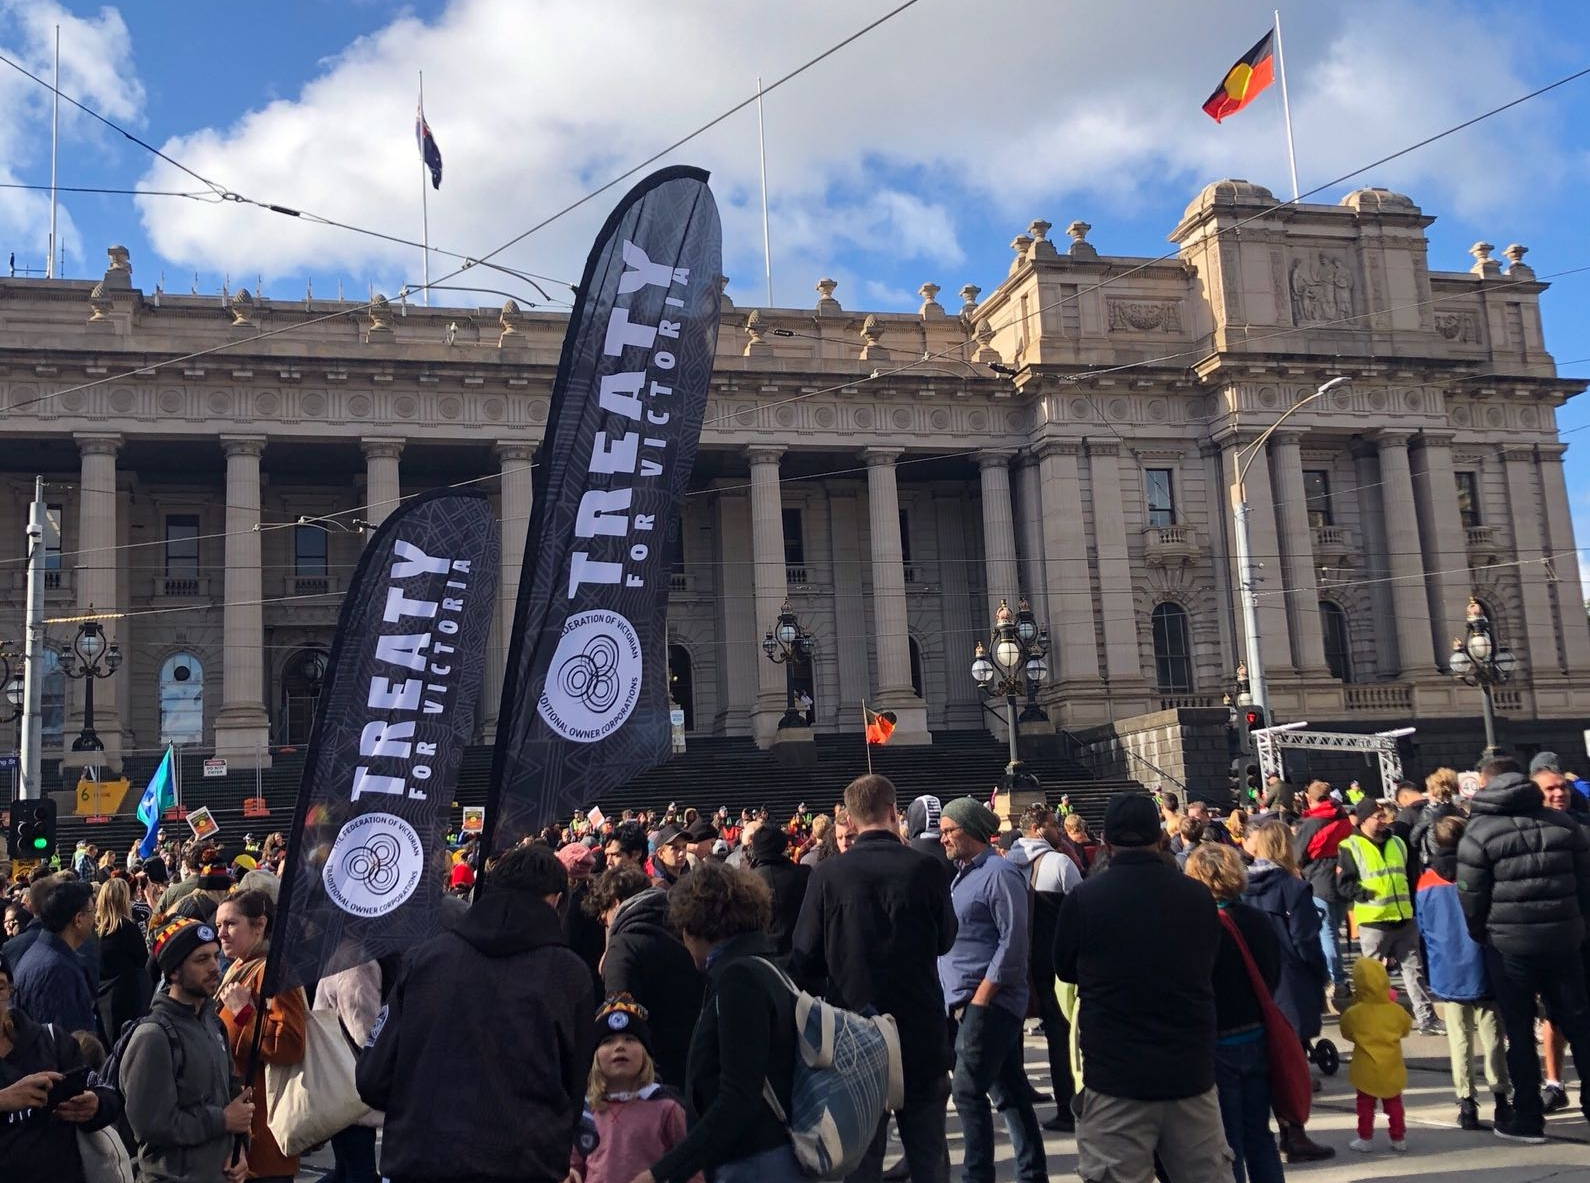 Treaty flags flying high at the Victorian Naidoc March Pic by Alex Sheehy